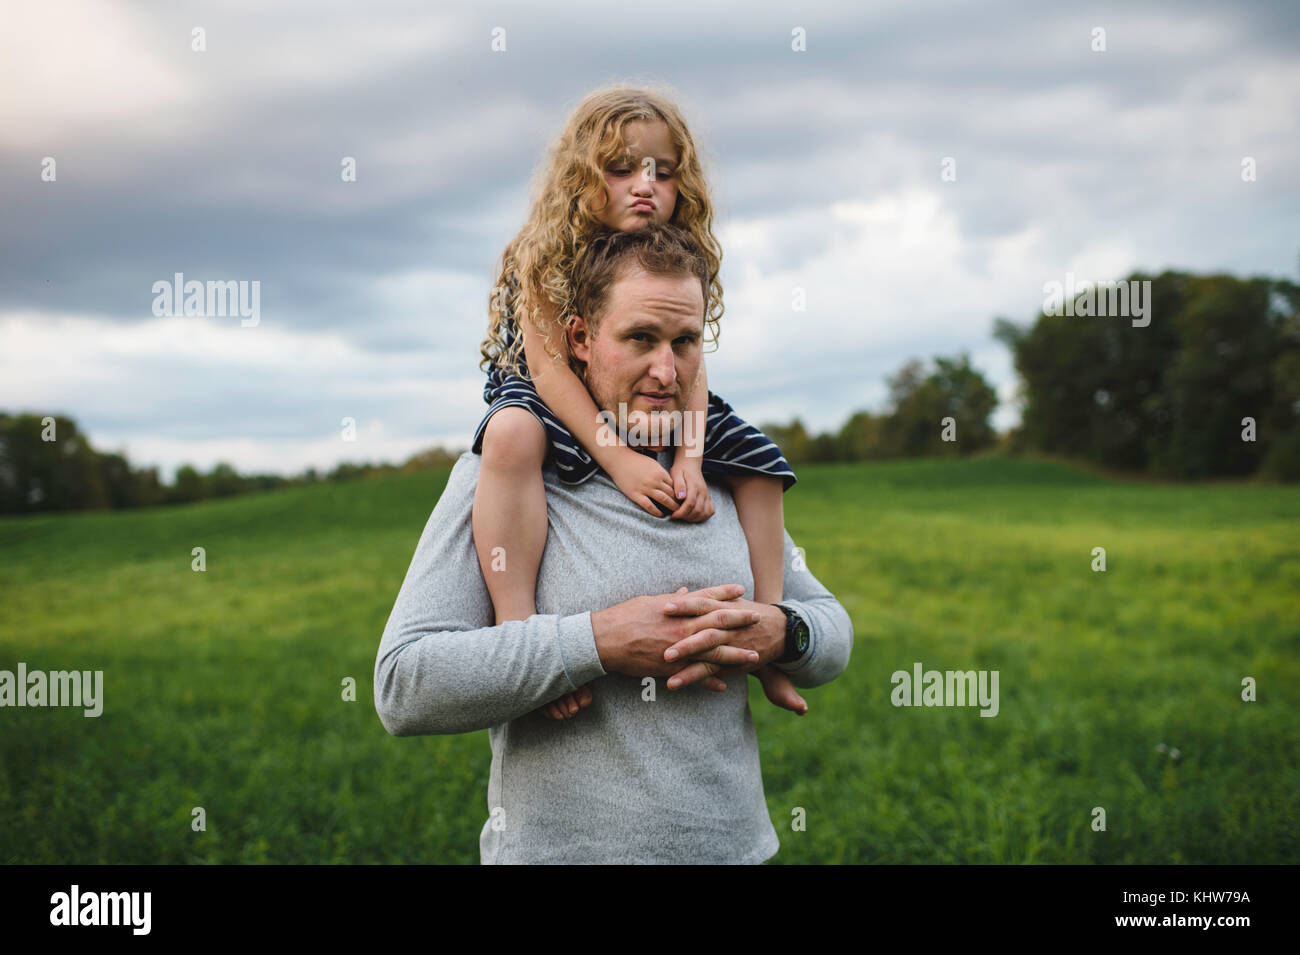 Father and daughter enjoying outdoors on green grassy field - Stock Image